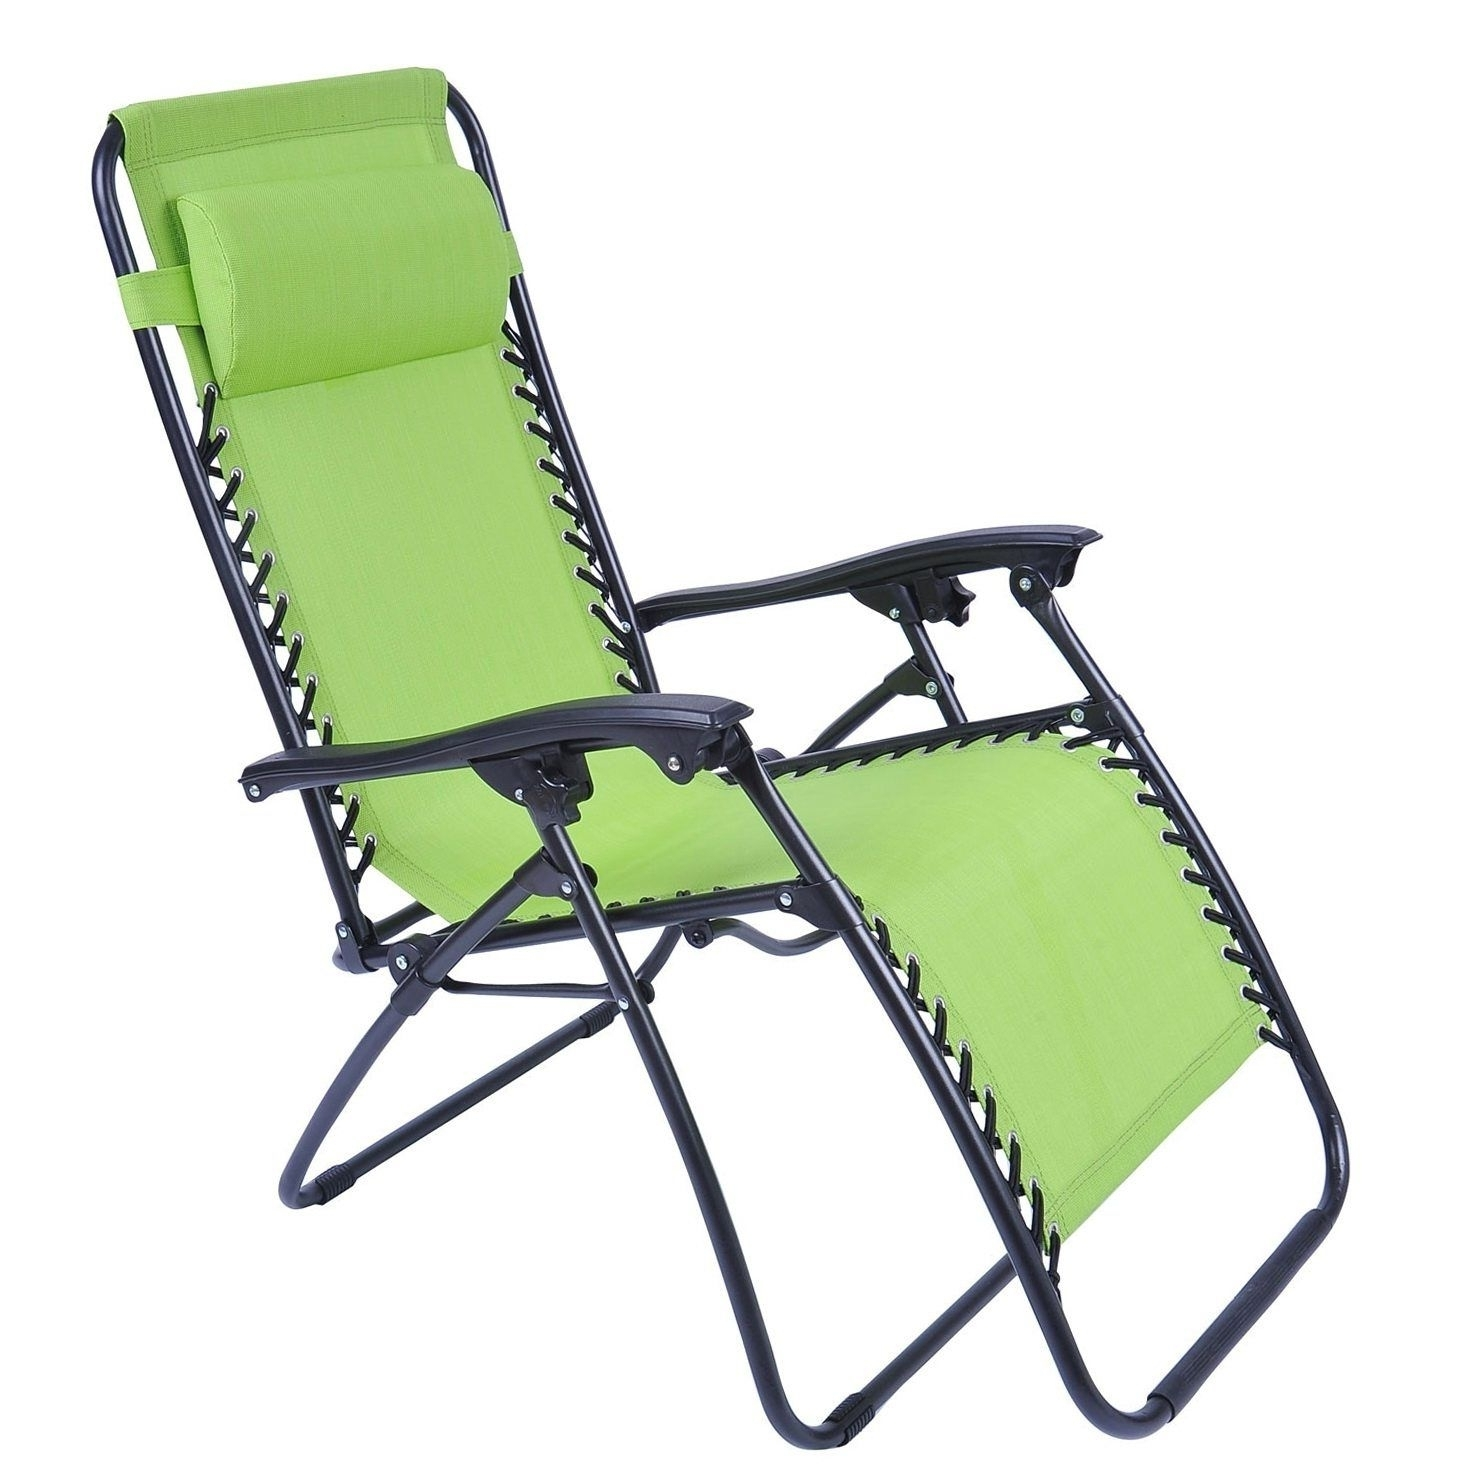 Popular Chaise Lounge Reclining Chairs For Outdoor Throughout Lounge Chair Outdoor Folding Folding Chaise Lounge Chair Patio (View 11 of 15)